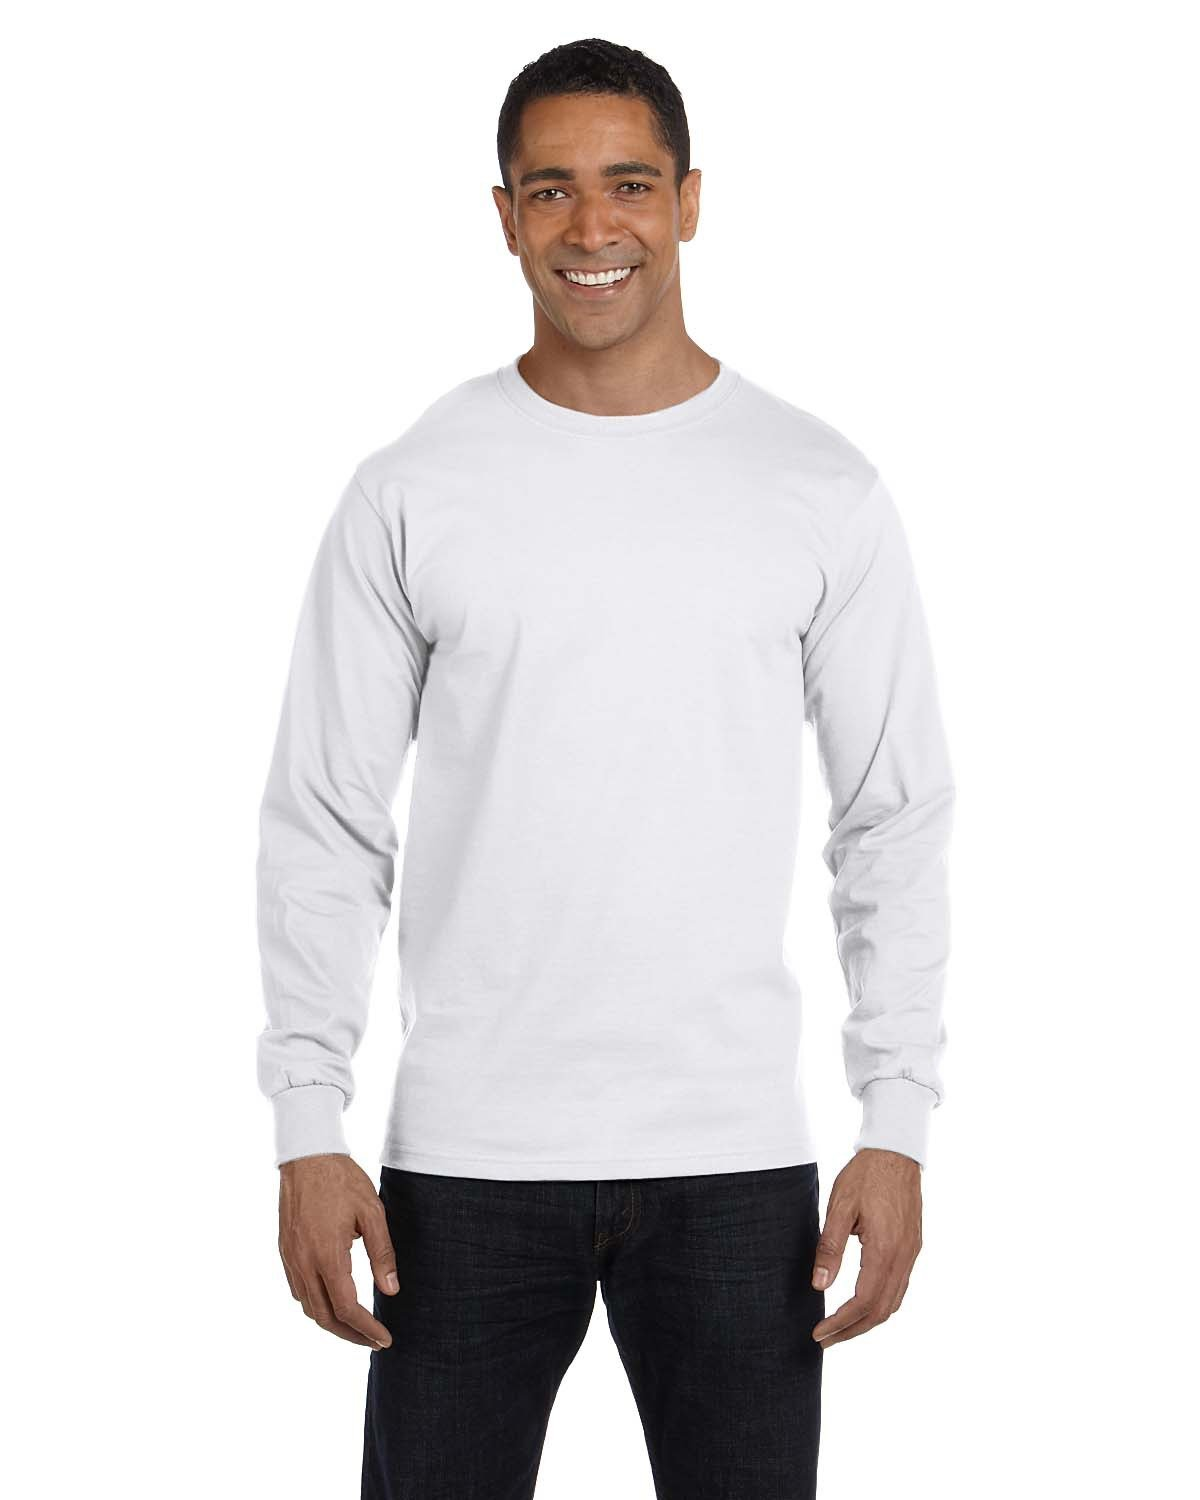 Hanes Adult Long-Sleeve Beefy-T® WHITE